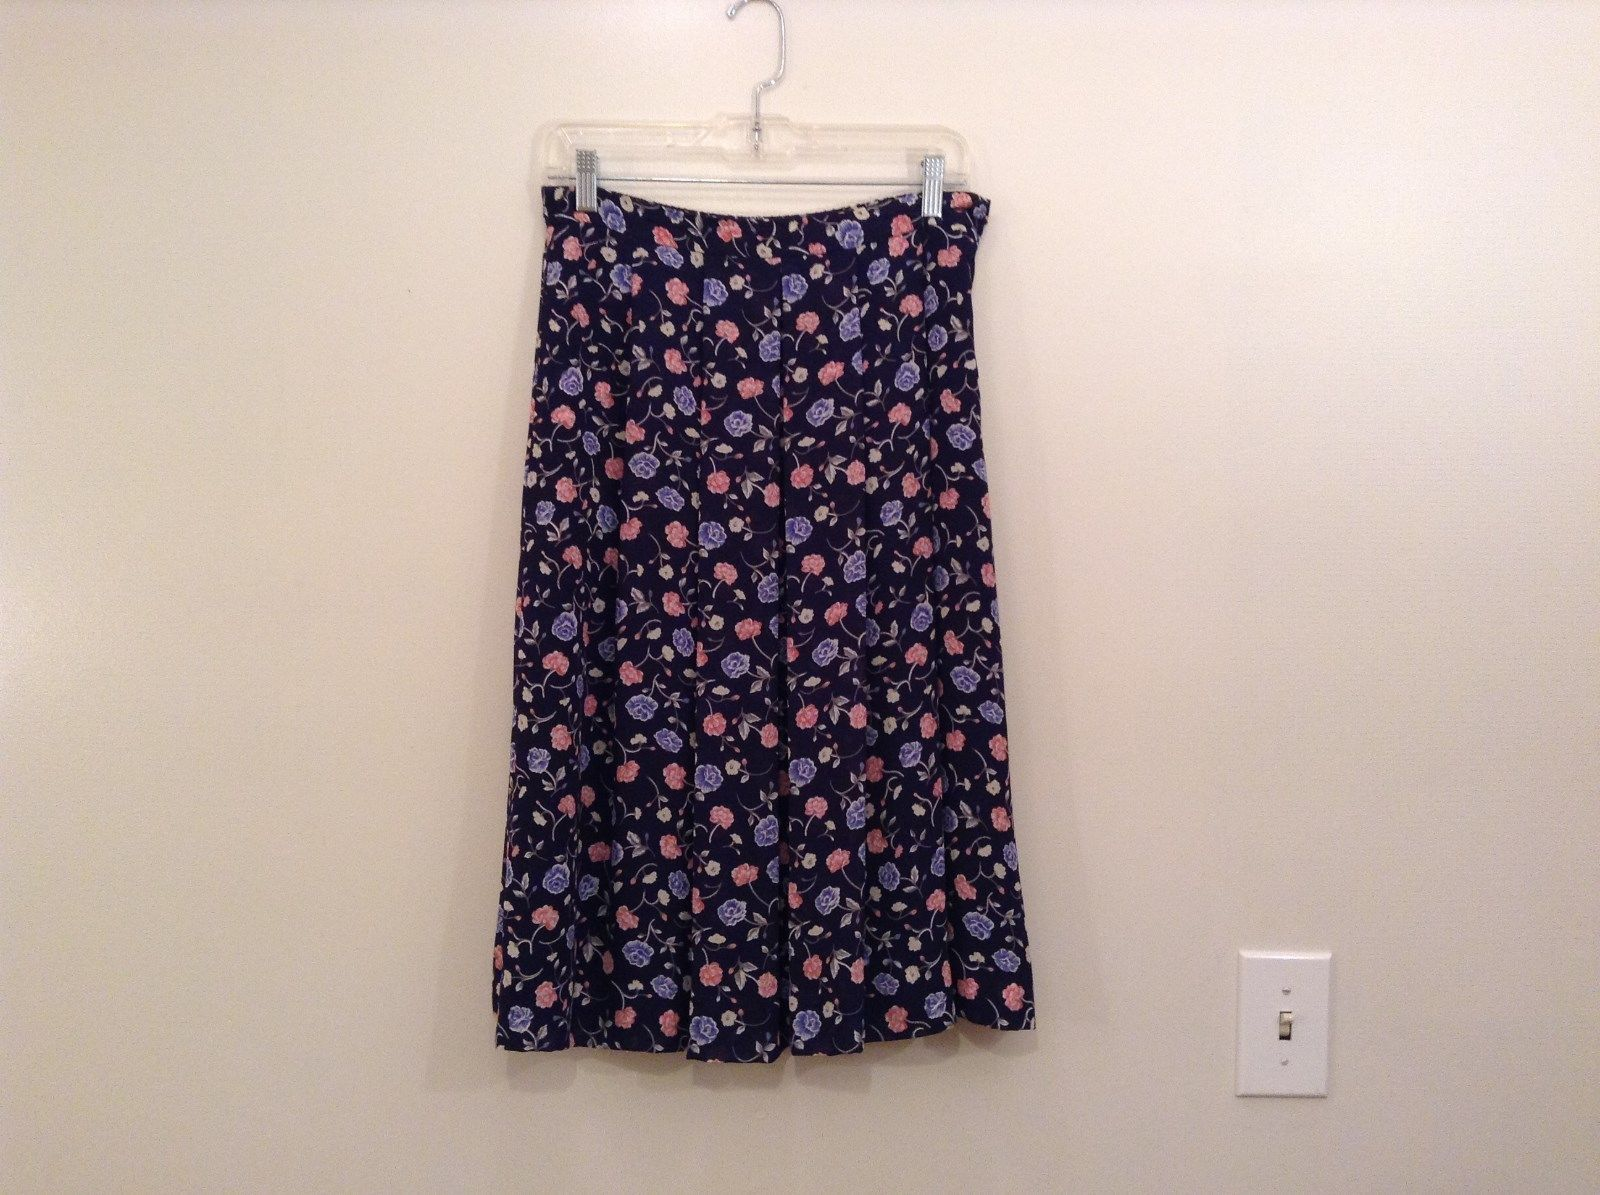 Navy Blue with Blue and Pink Flowers Lined Skirt Talbots Elastic Waist Size 10